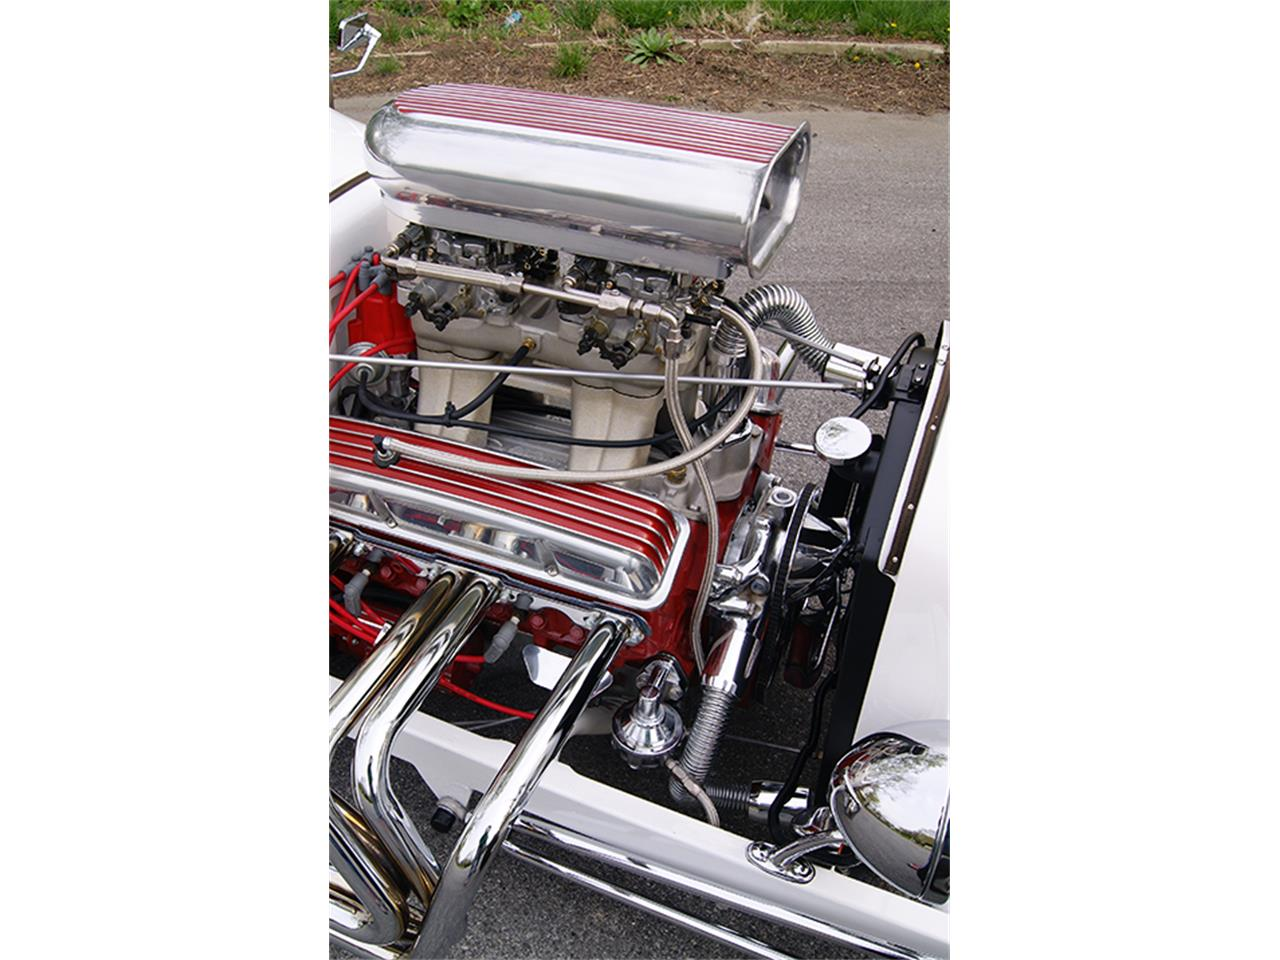 Large Picture of '27 Ford Roadster - $22,500.00 Offered by a Private Seller - C92B